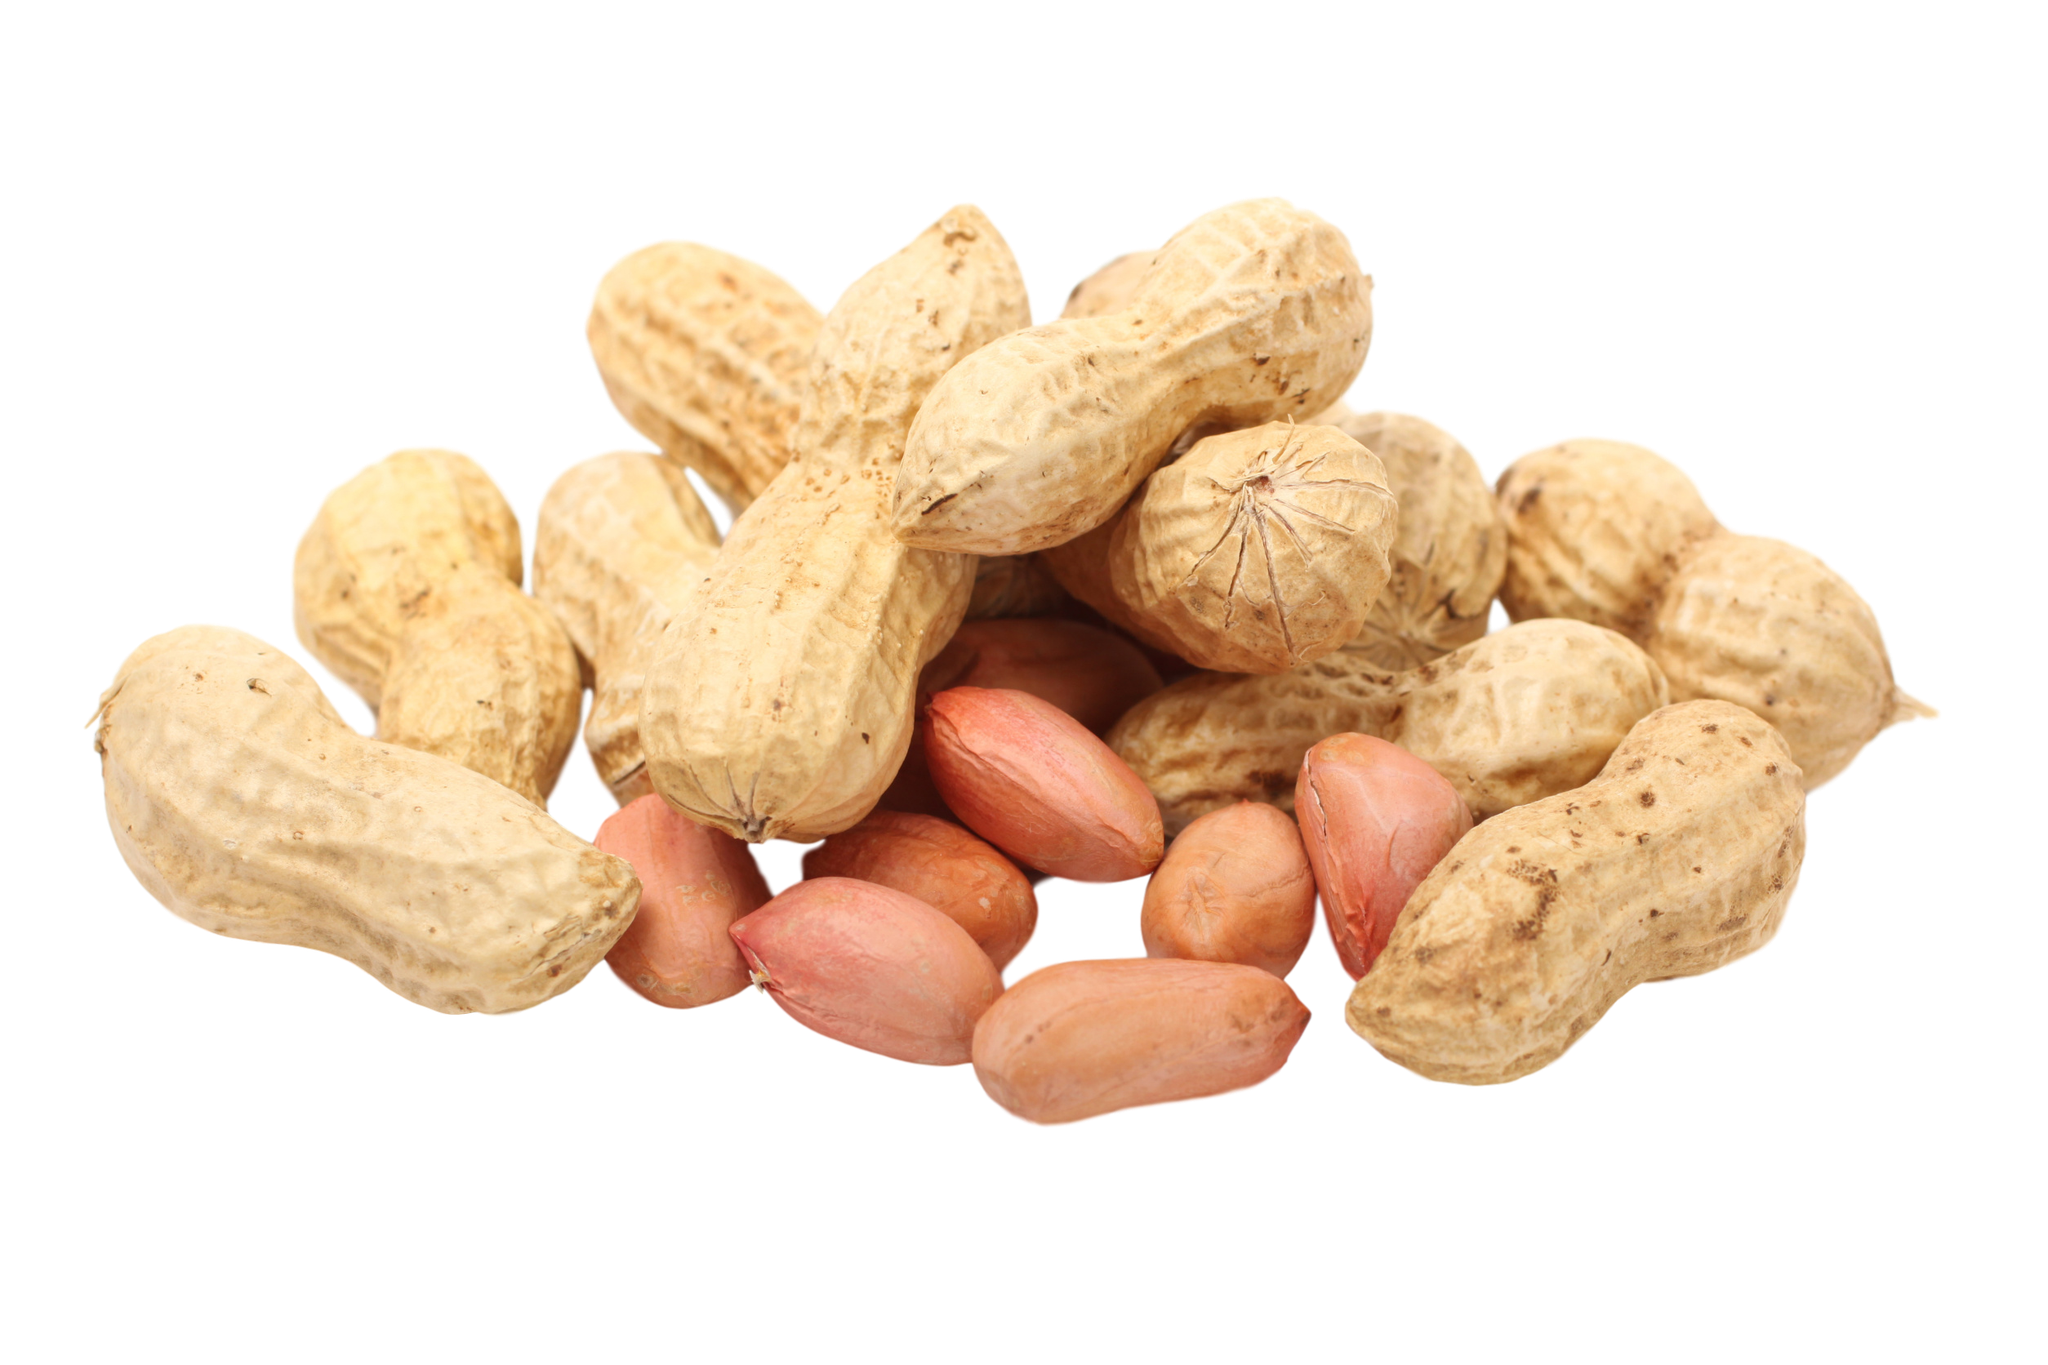 Peanuts transparent background. Peanut png image with